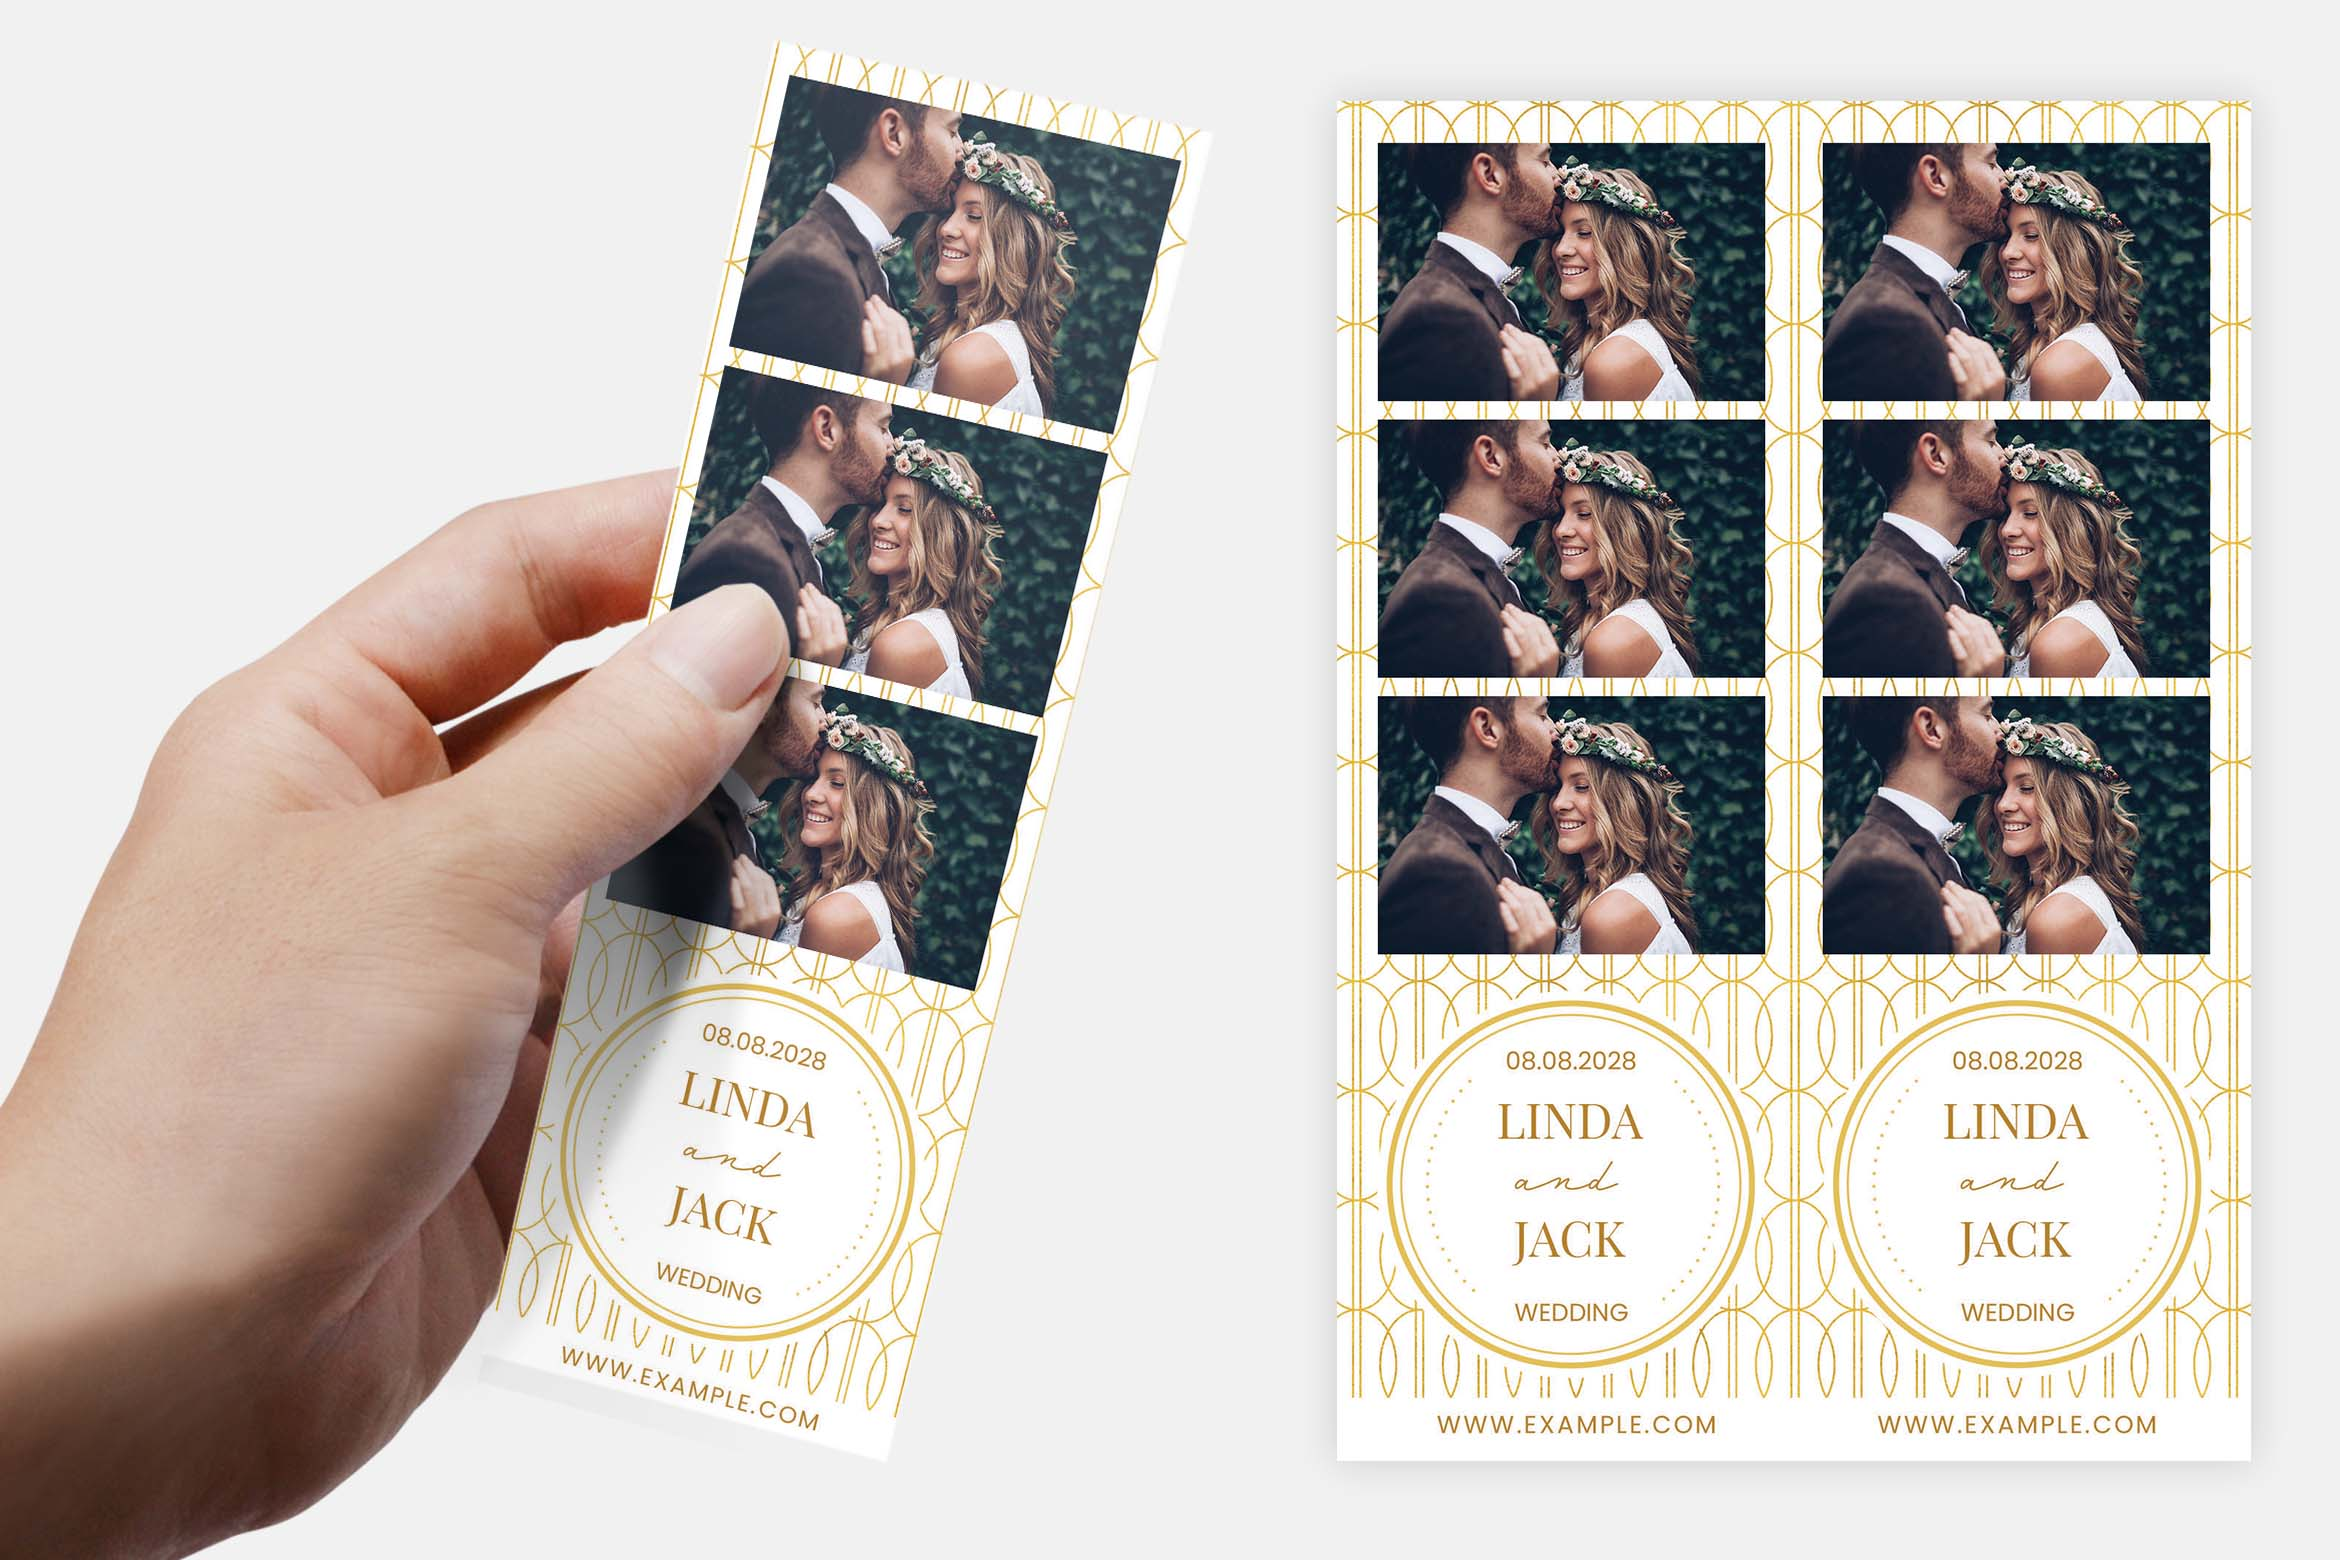 Wedding Photo Booth Template (PSD, PNG, DSLR Booth)